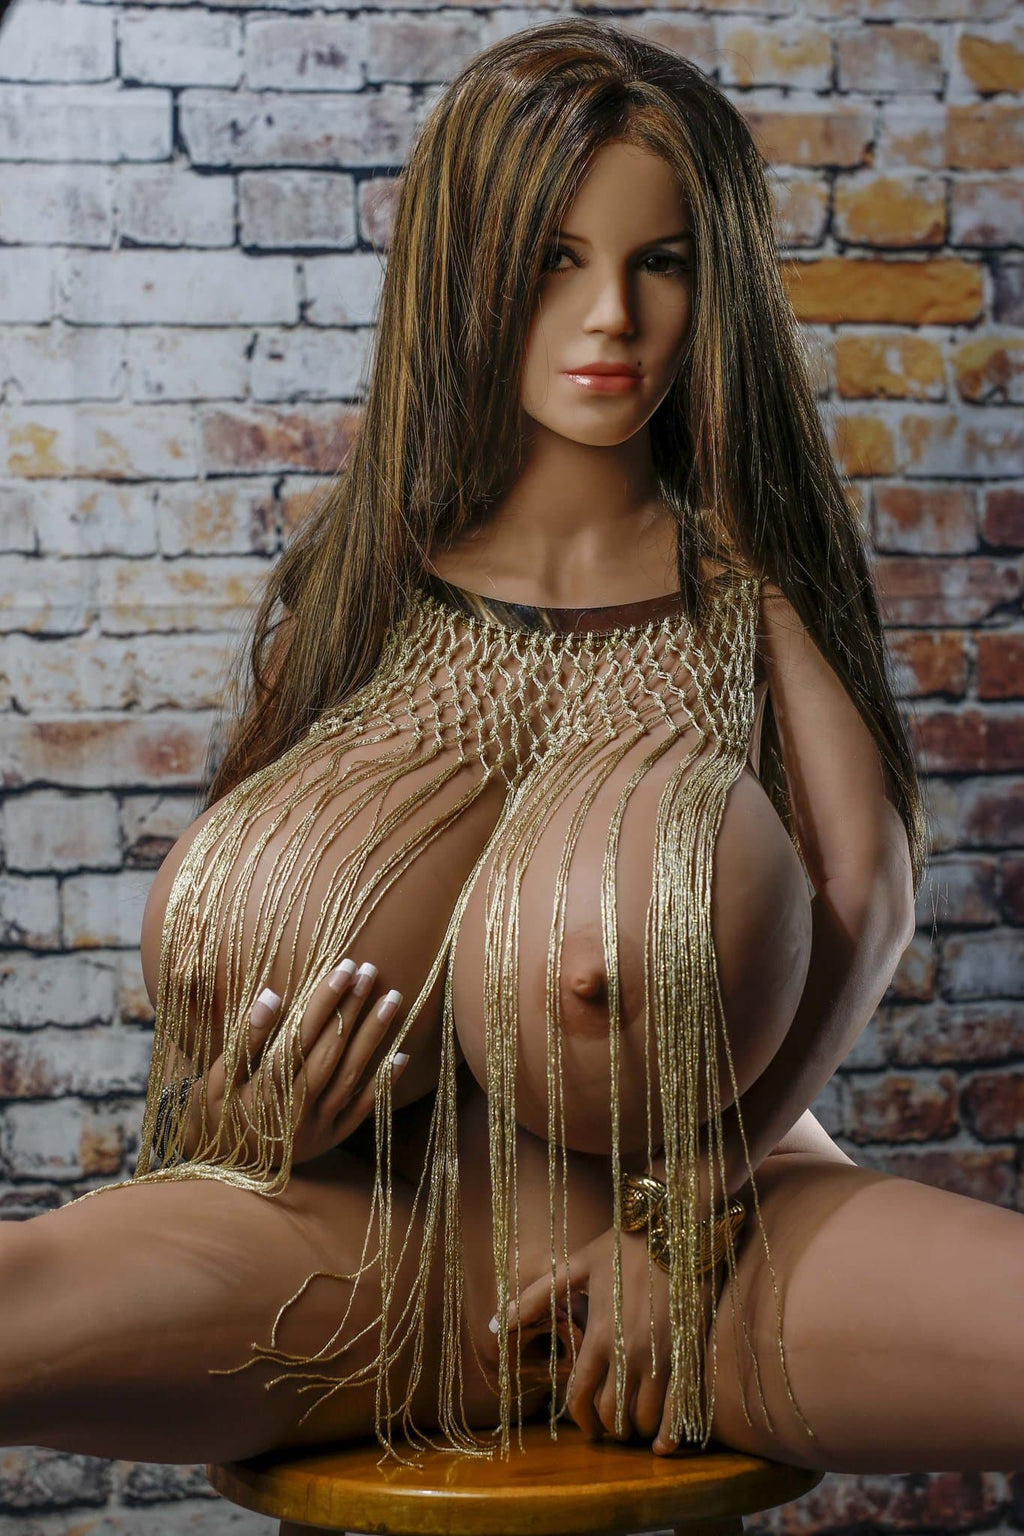 freddi 150cm brown hair curvy giant massive tits tan skin tpe yl bbw sex doll